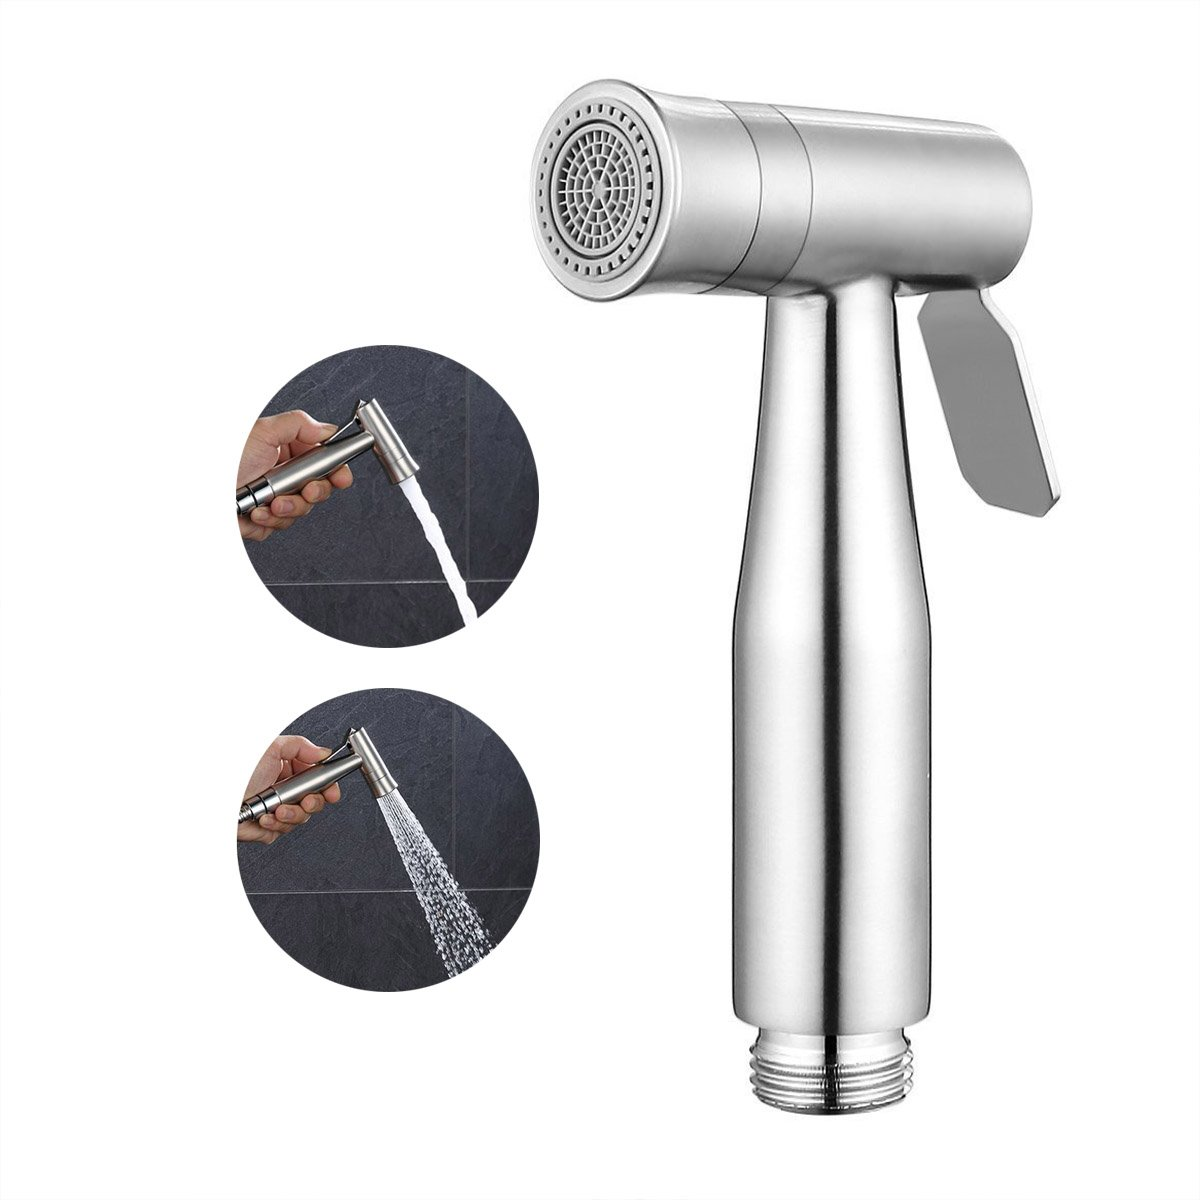 ESOW SUS304 Cloth Diaper Sprayer Head with Dual Spray Modes, Bathroom Handheld Shattaf Sprayer Showerhead with Adjustable Water Pressure Control, For Personal Hygiene Cleaning Care (Sprayer Head Only)